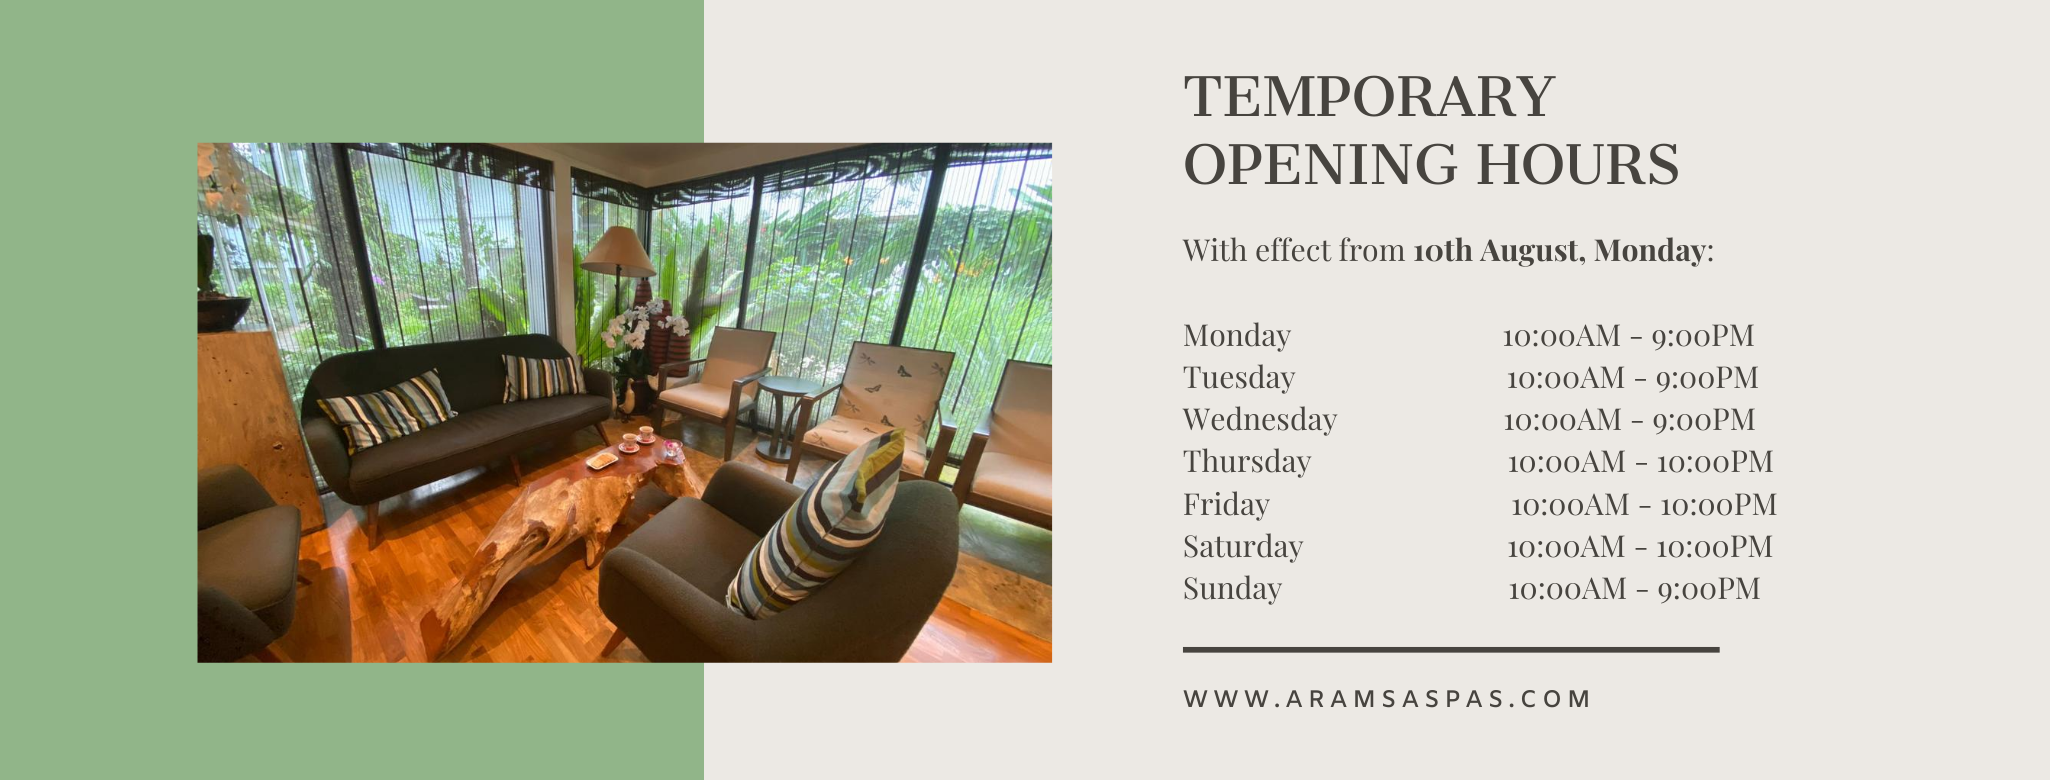 TEMPORARY OPENING HOURS (AUGUST) (1)